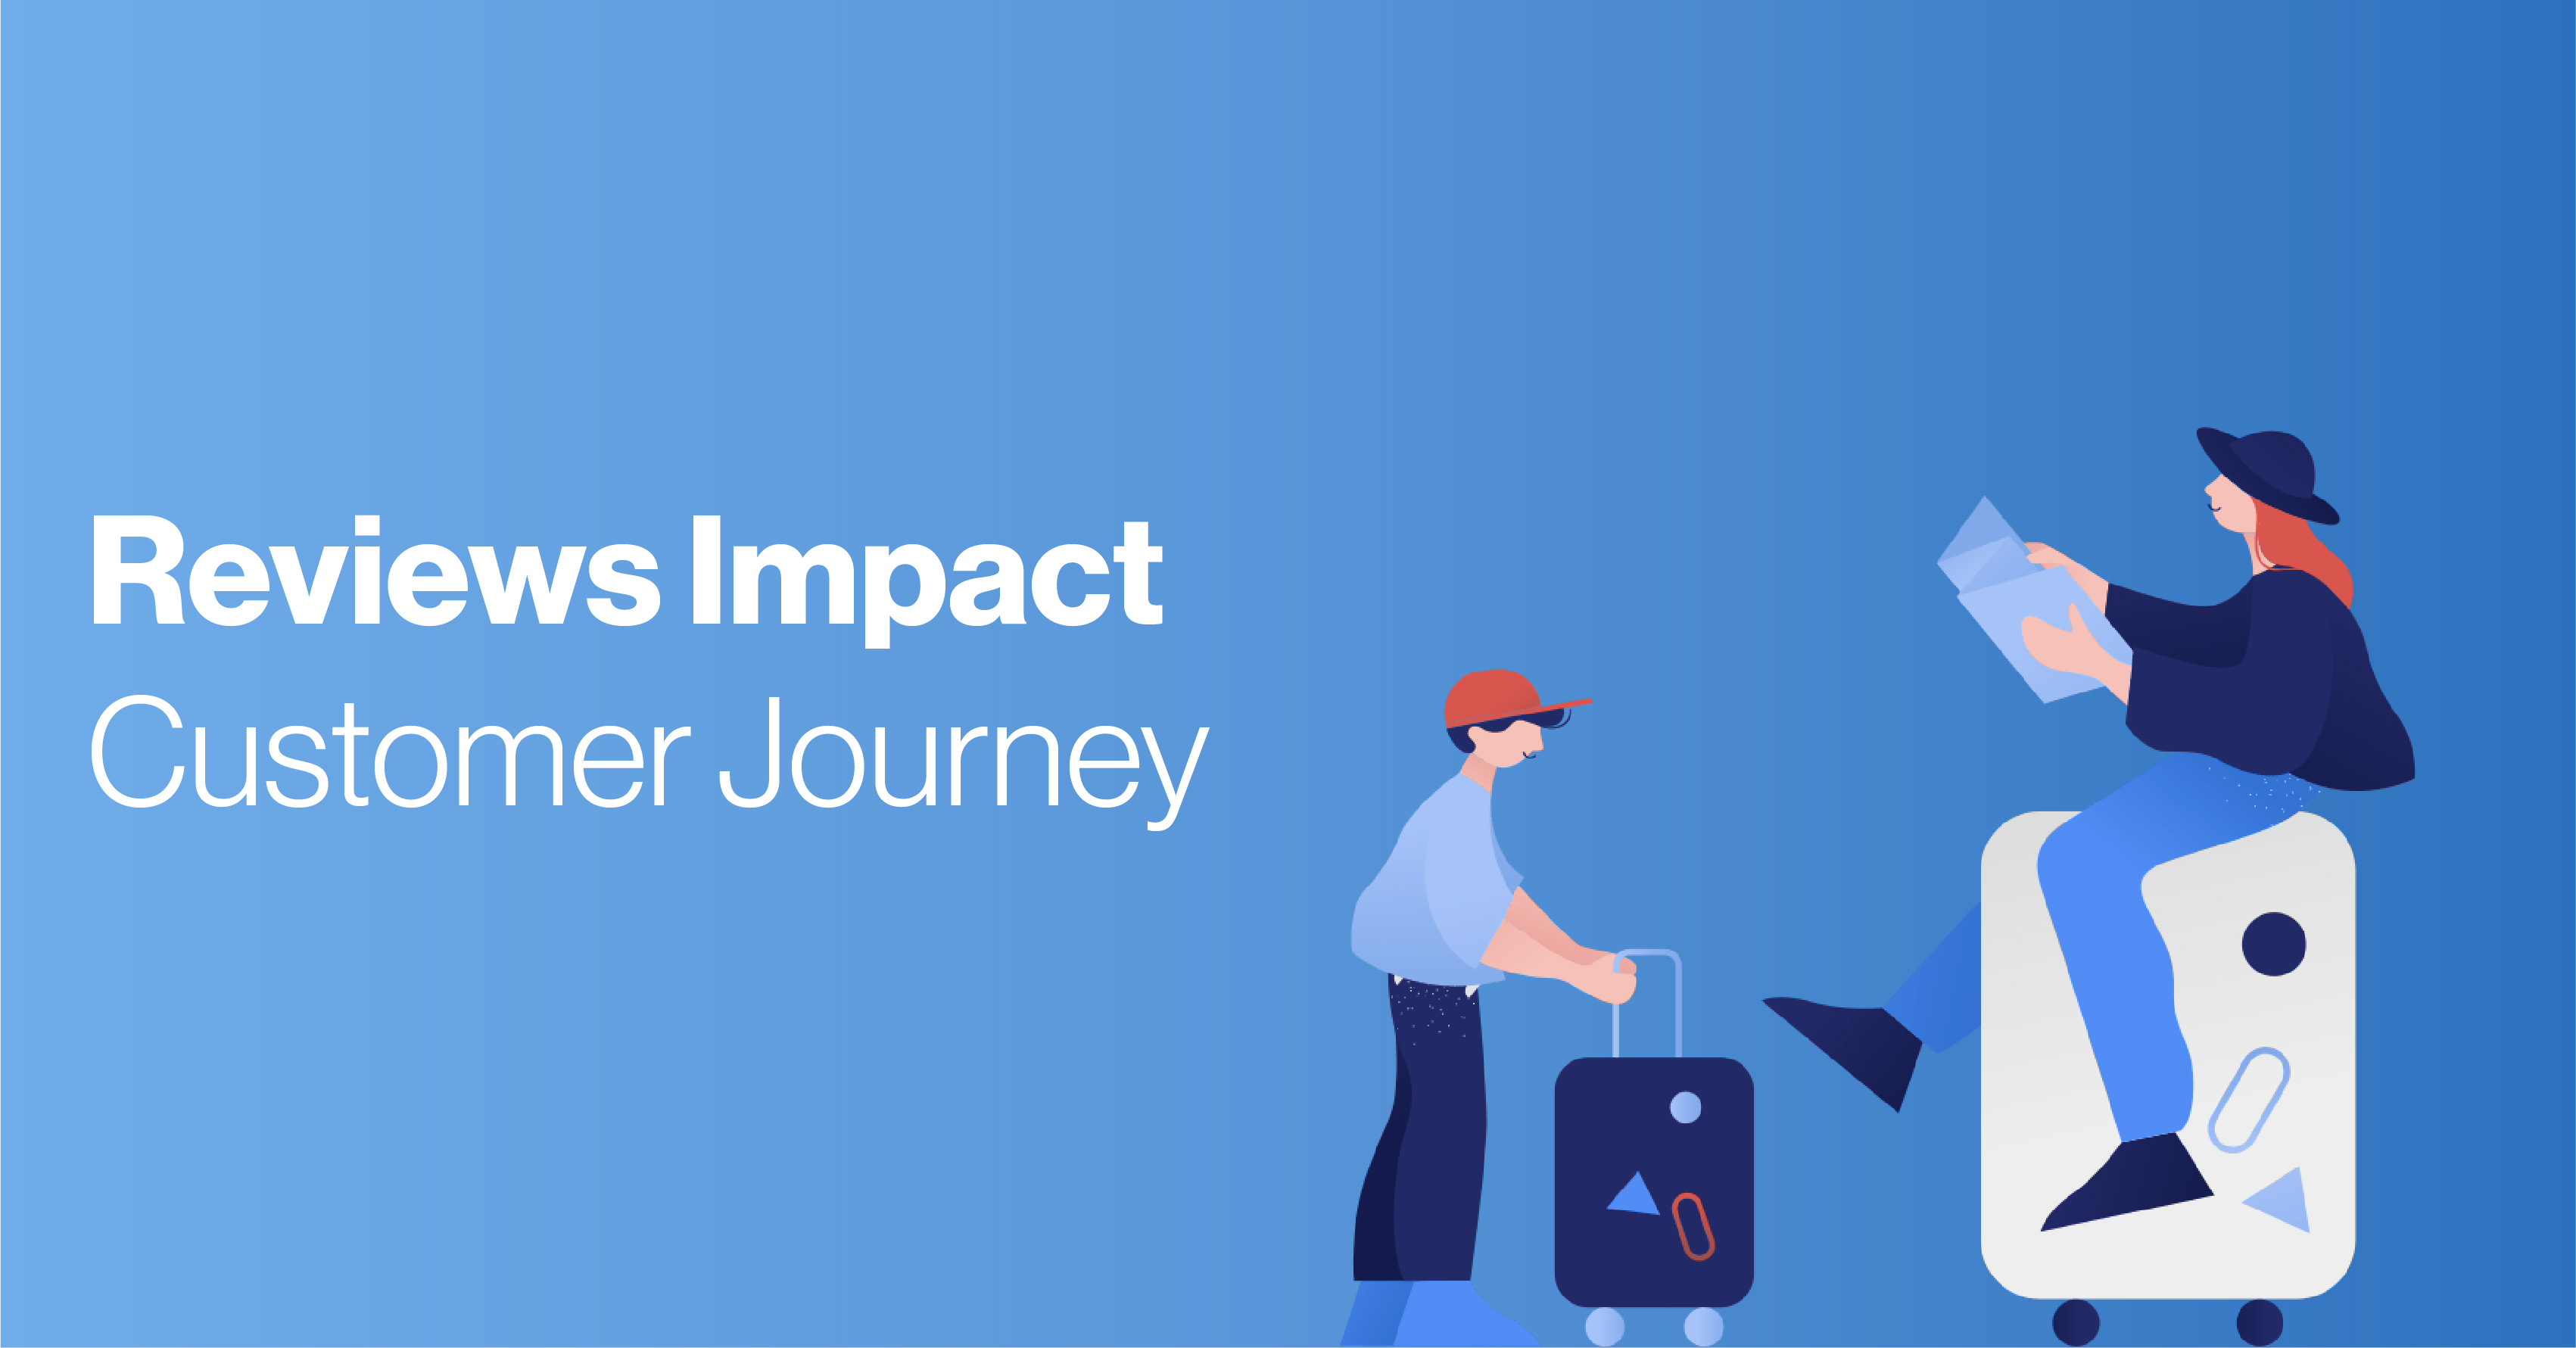 4 ways reviews positively impact your customer journey